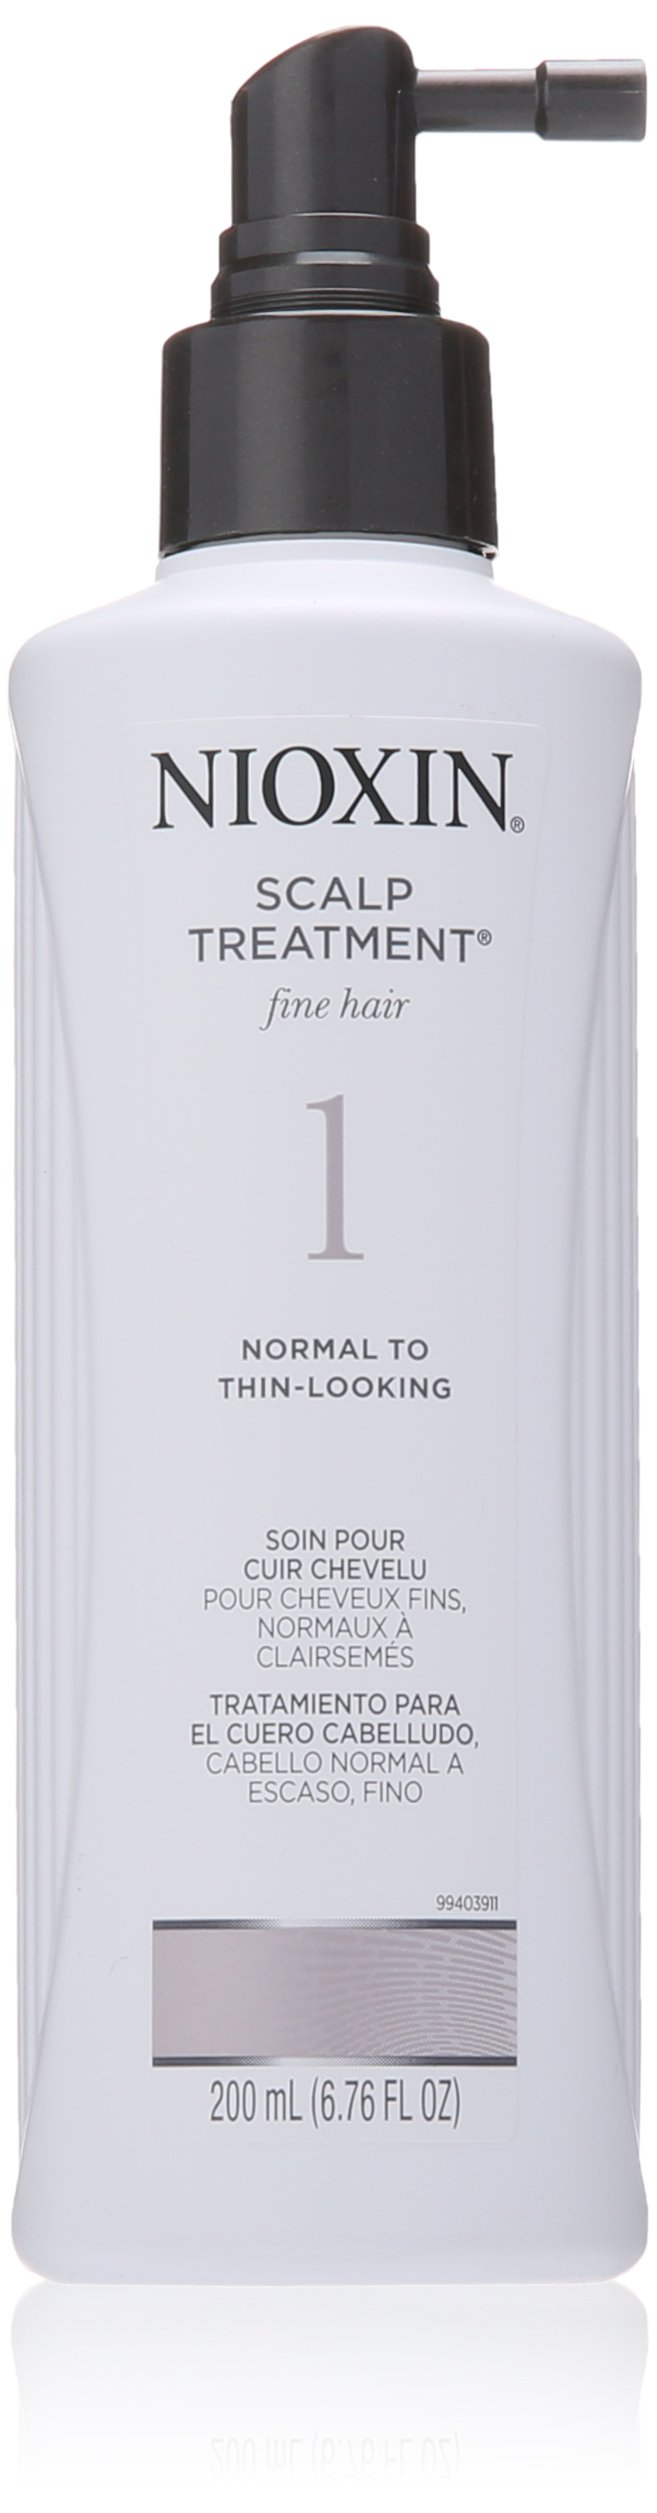 Nioxin System 1 Scalp Treatment for Fine Natural Normal-Thin Hair, 6.76 Ounce